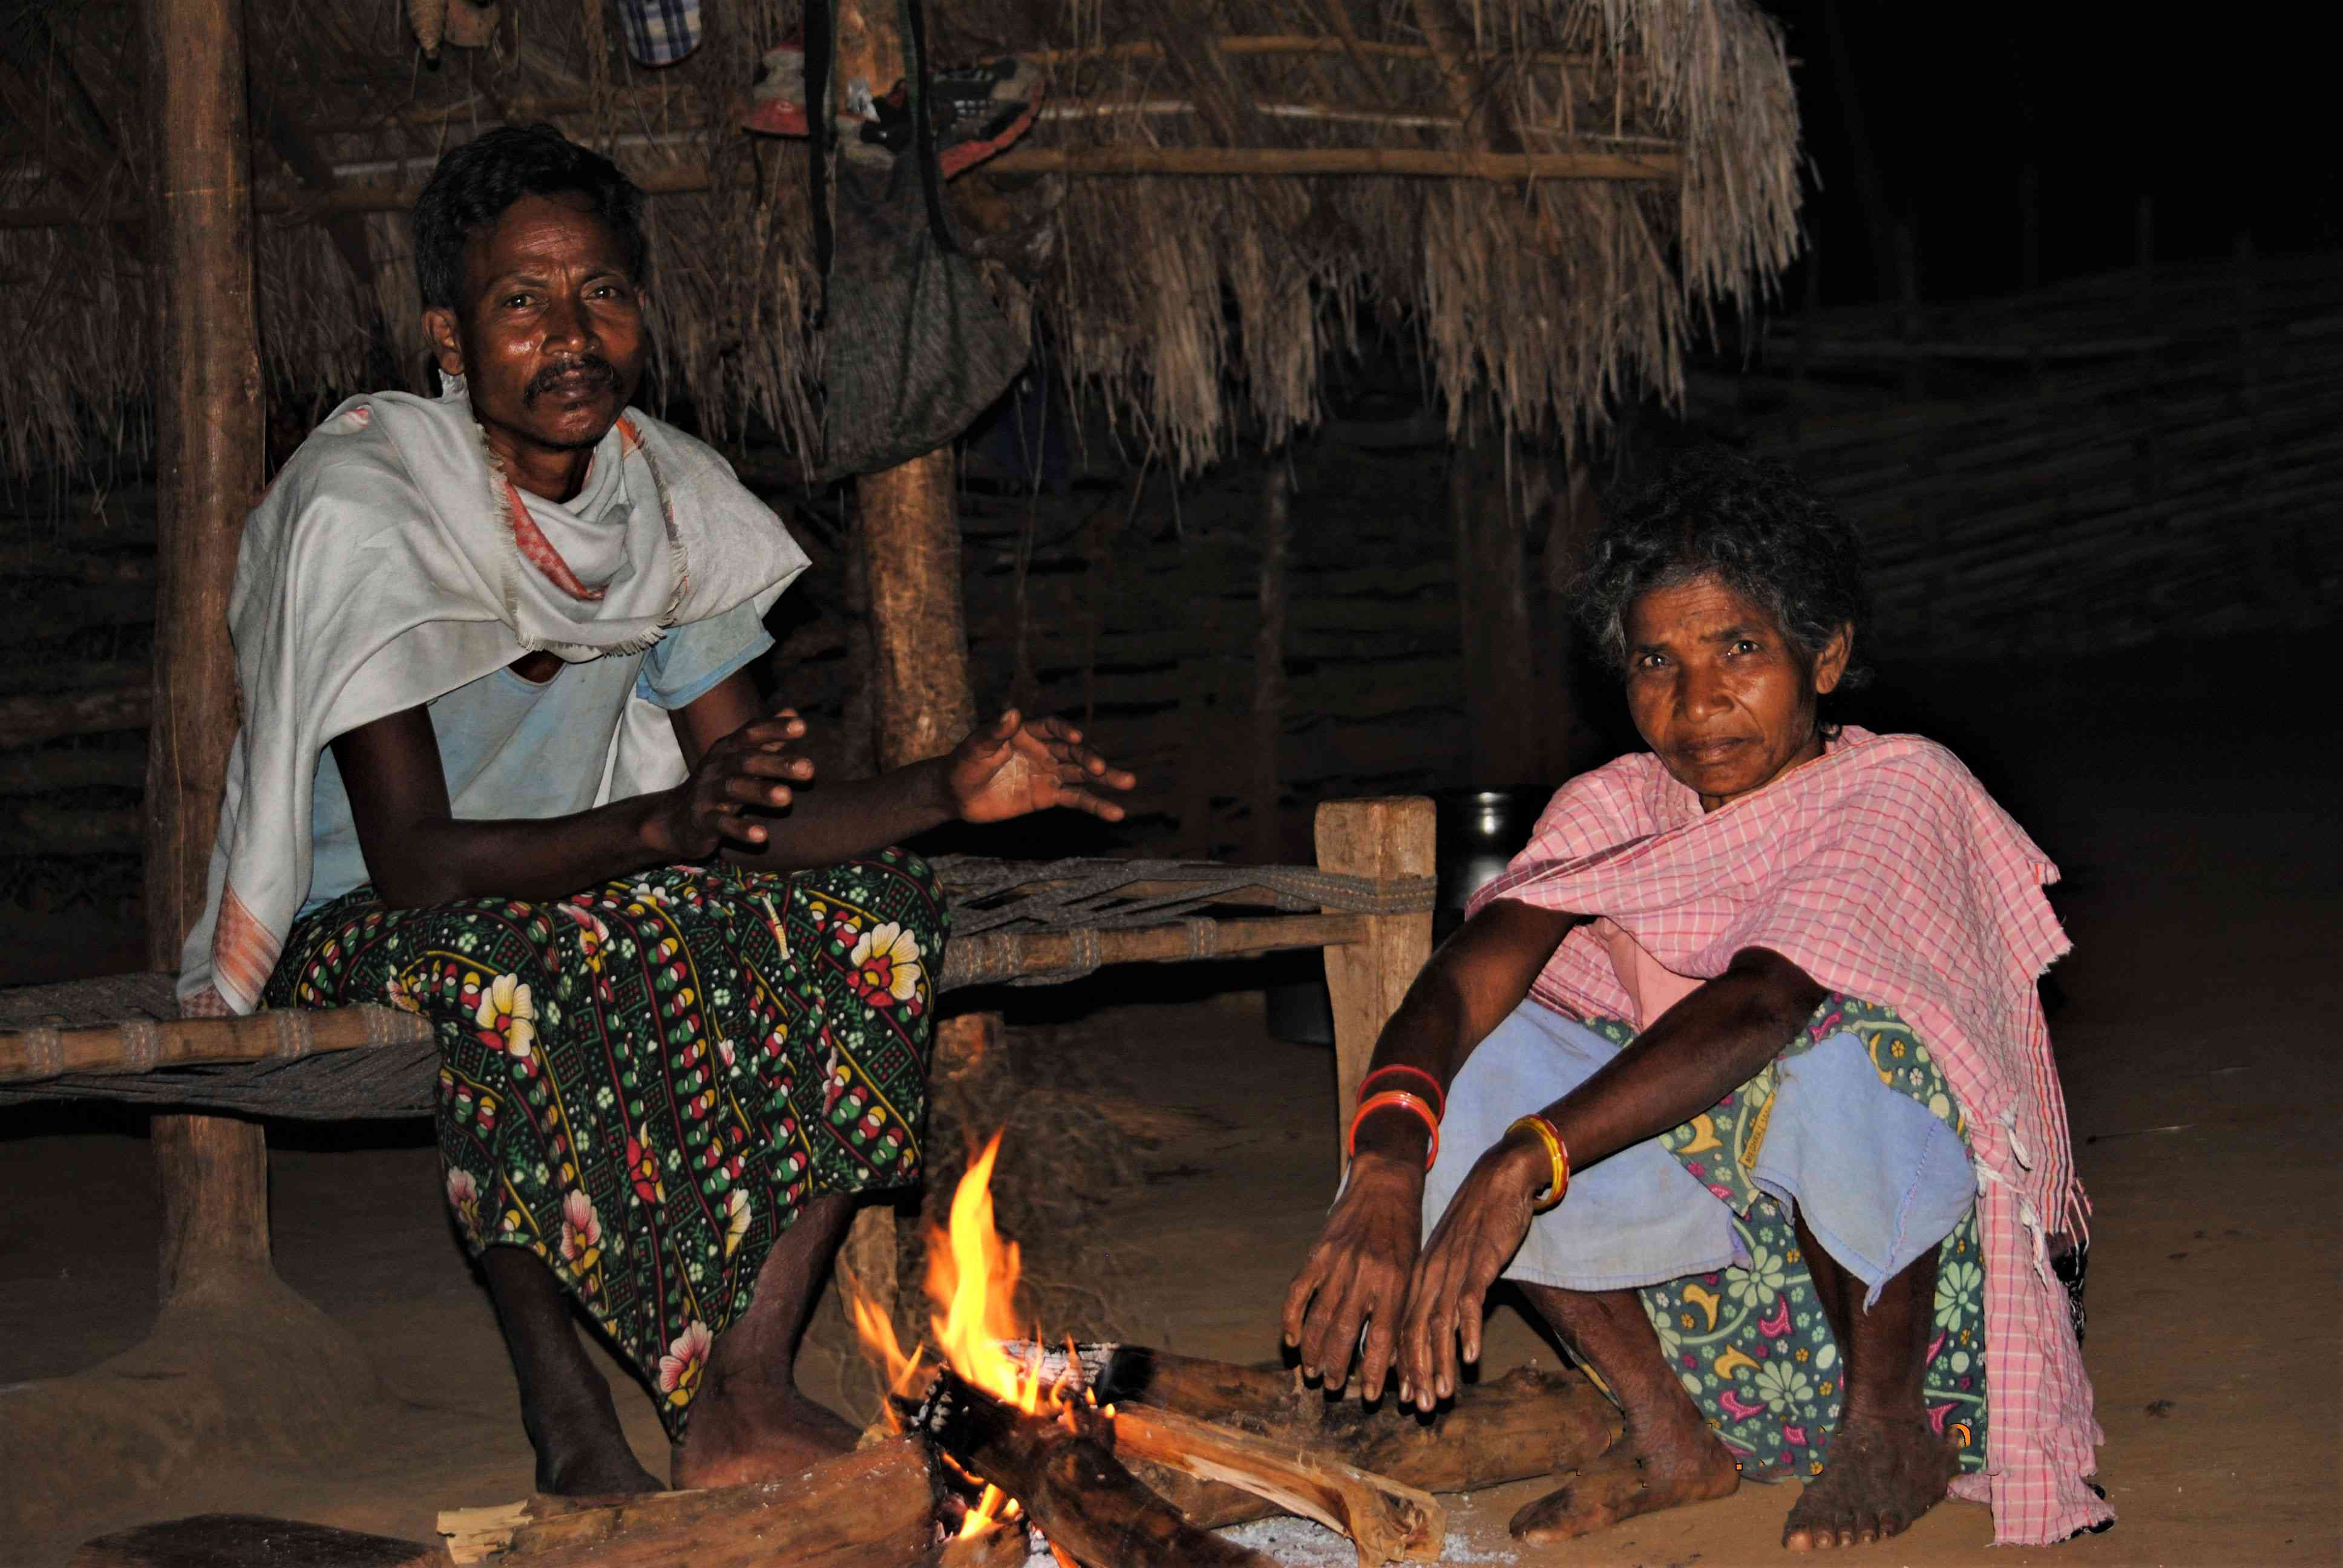 Durma village residents Barse Hidma and his wife after a tense night.